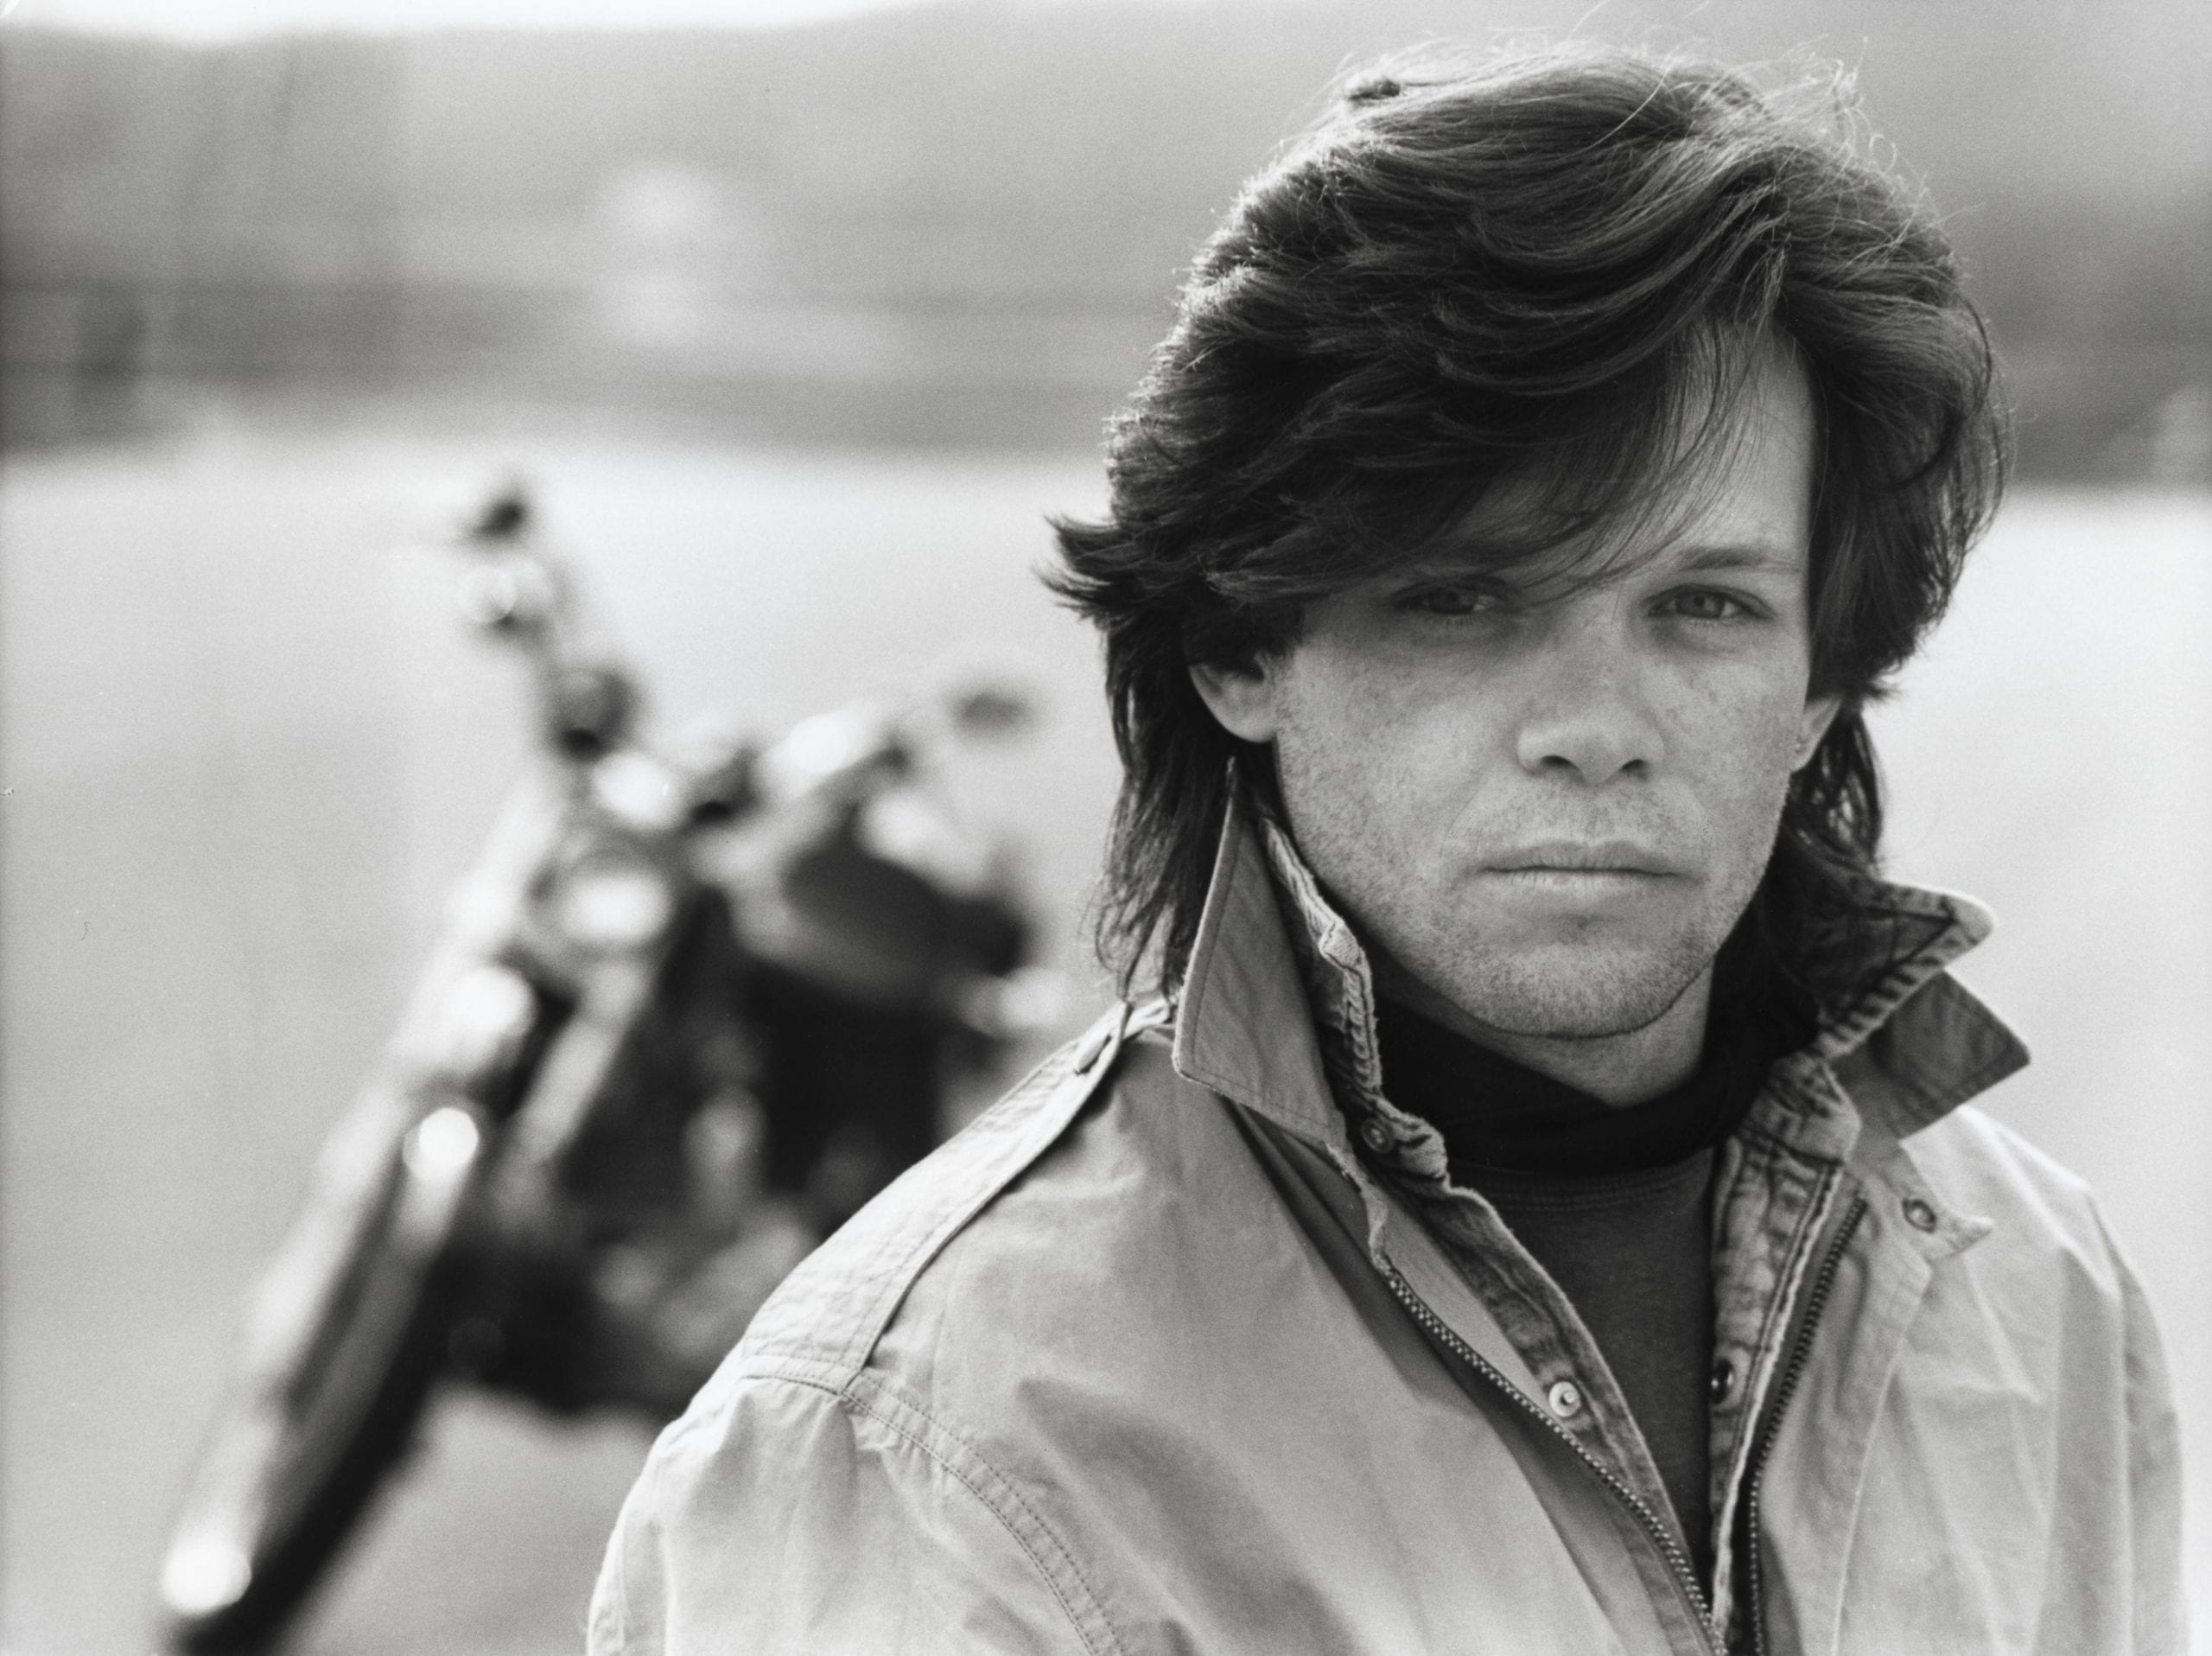 Who Is John Mellencamp? Know More About The 70s Heartland Rock Musician